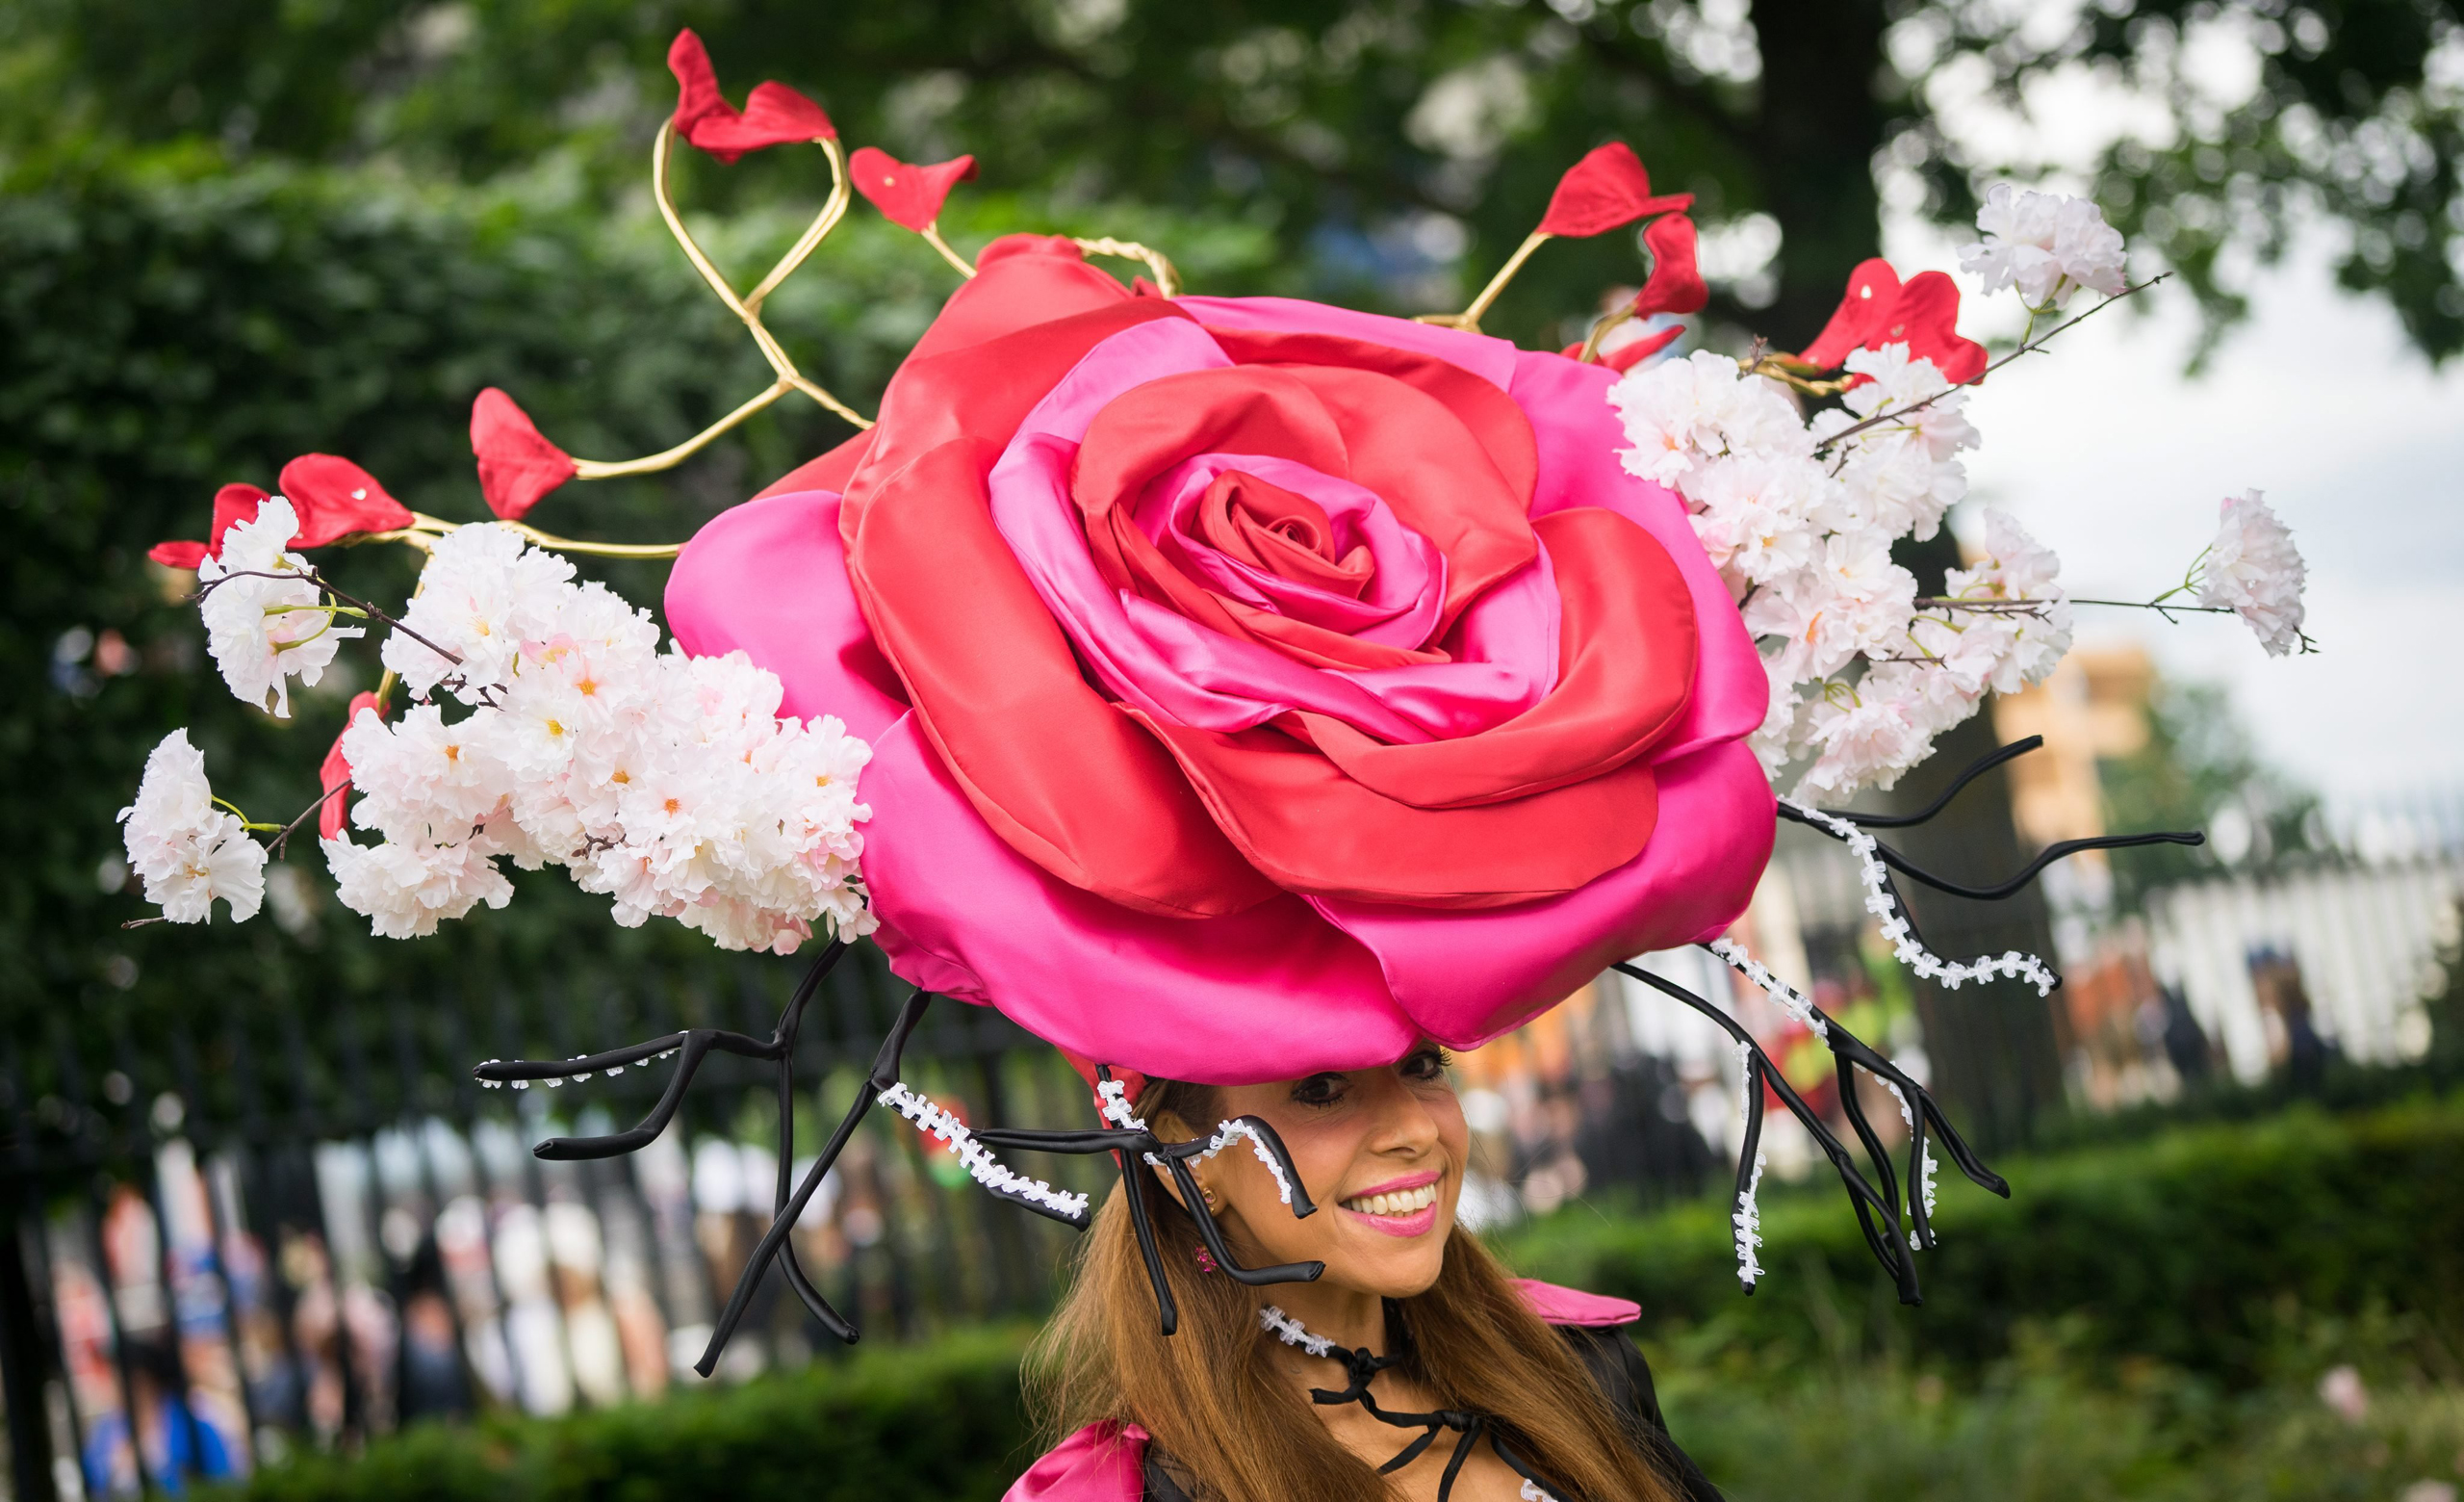 Race-goers arrive on Ladies Day of the Royal Ascot horse race meeting in Ascot, U.K., on June 16, 2016.